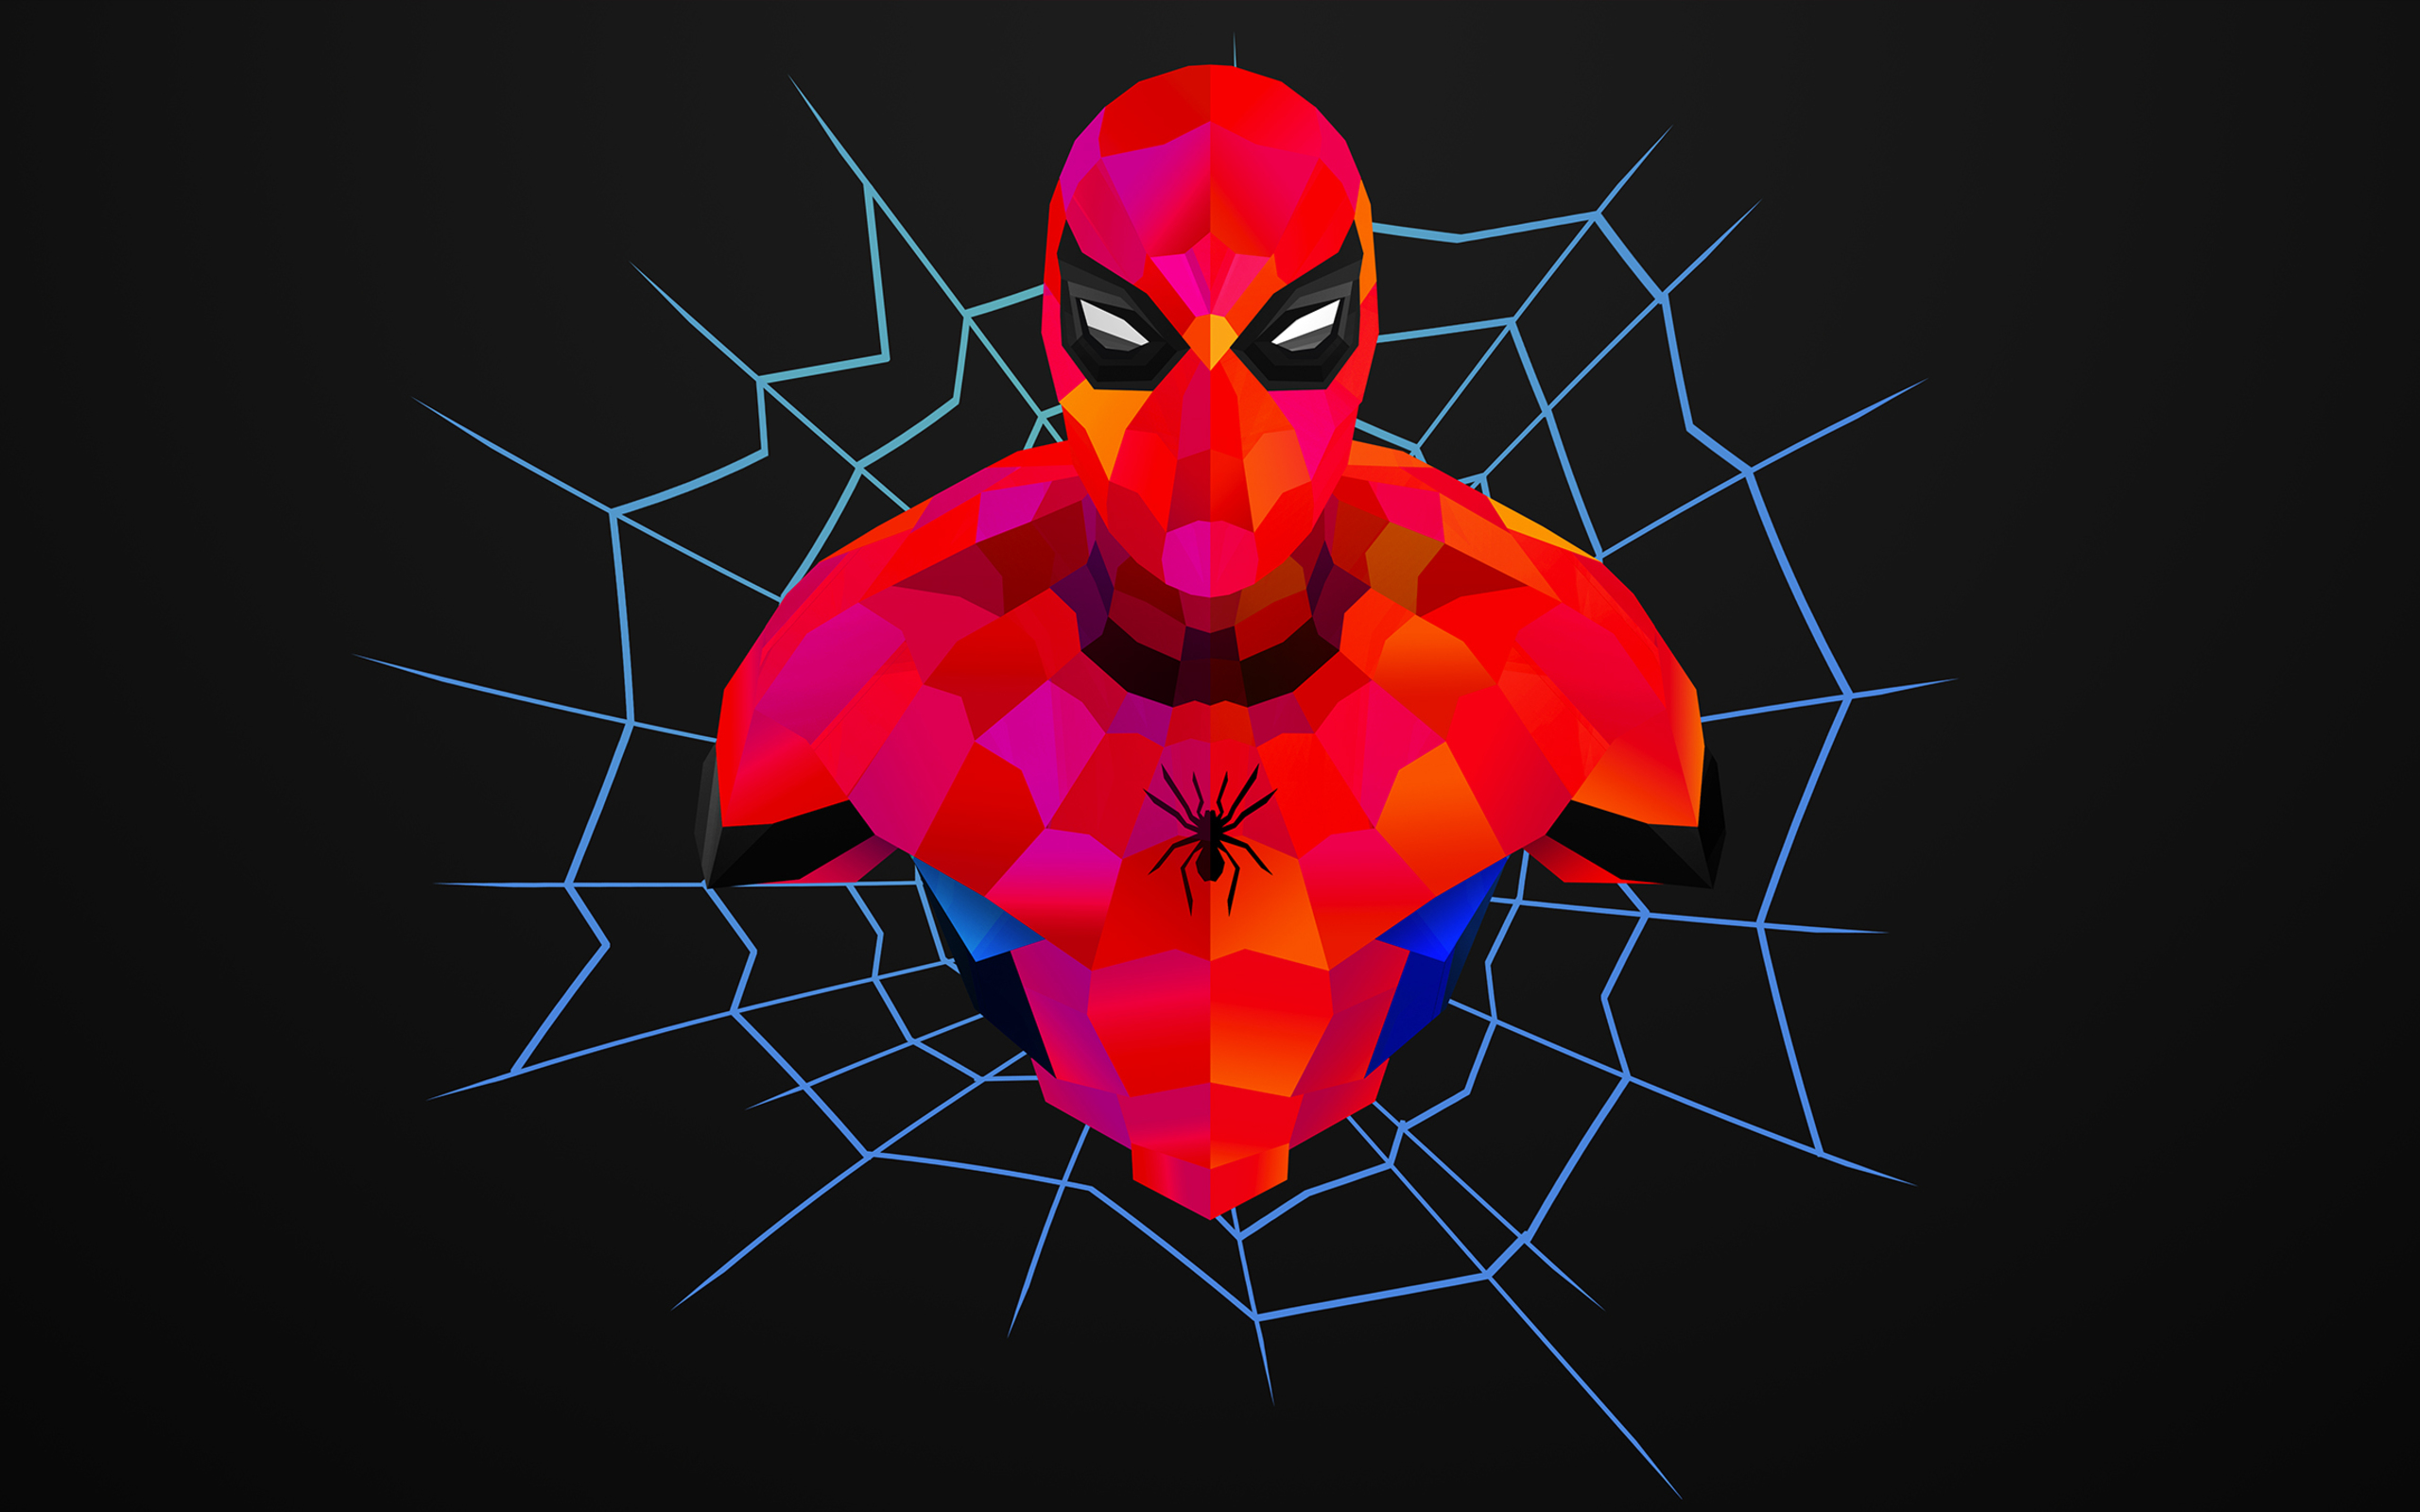 spiderman-abstract-u3.jpg